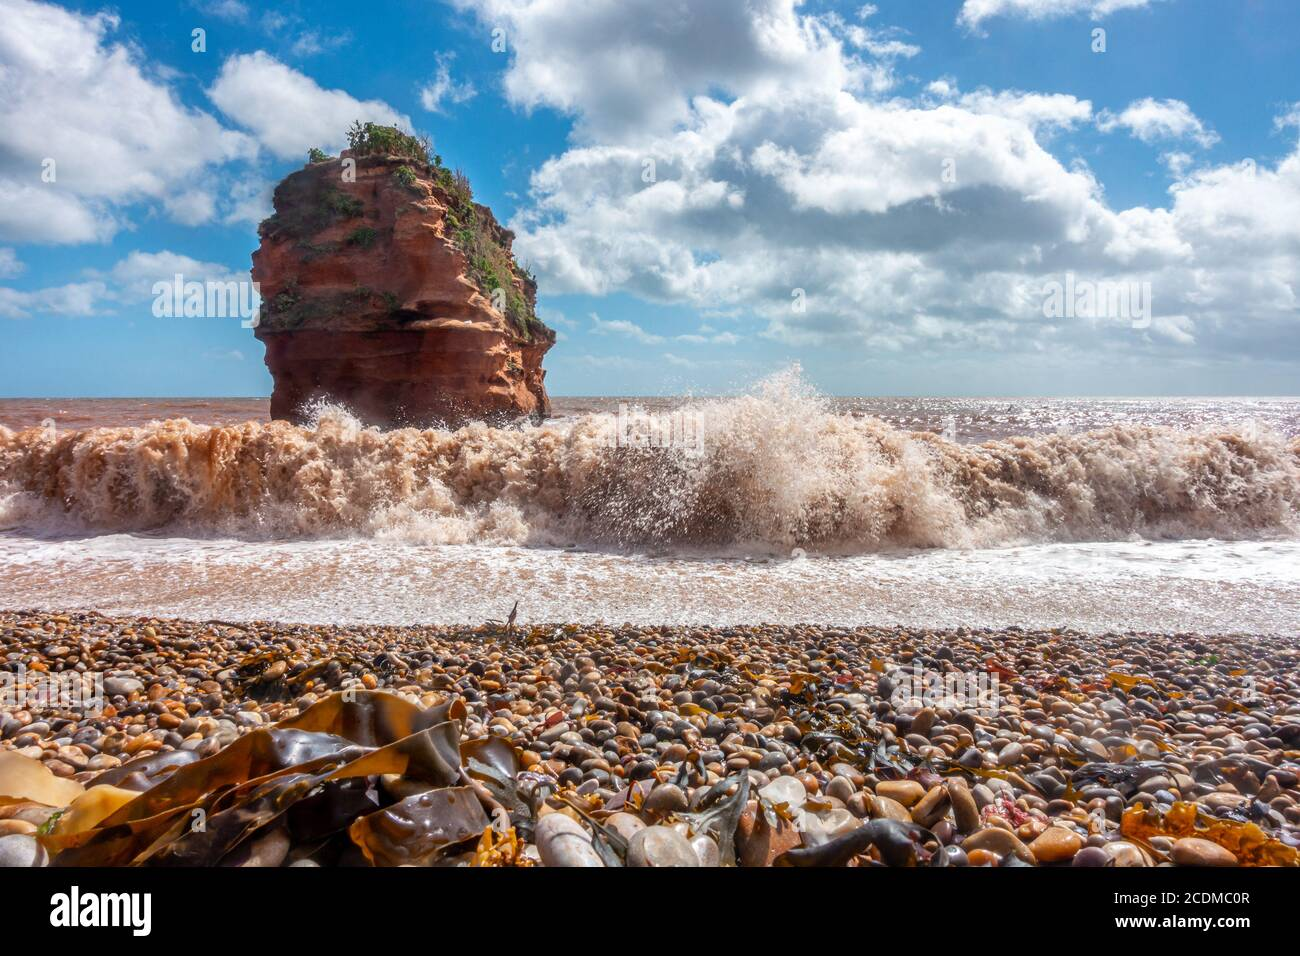 waves-roll-onto-the-beach-at-ladram-bay-in-south-devon-england-sandstone-cliffs-have-eroded-over-time-to-leave-a-free-standing-stack-2CDMC0R.jpg